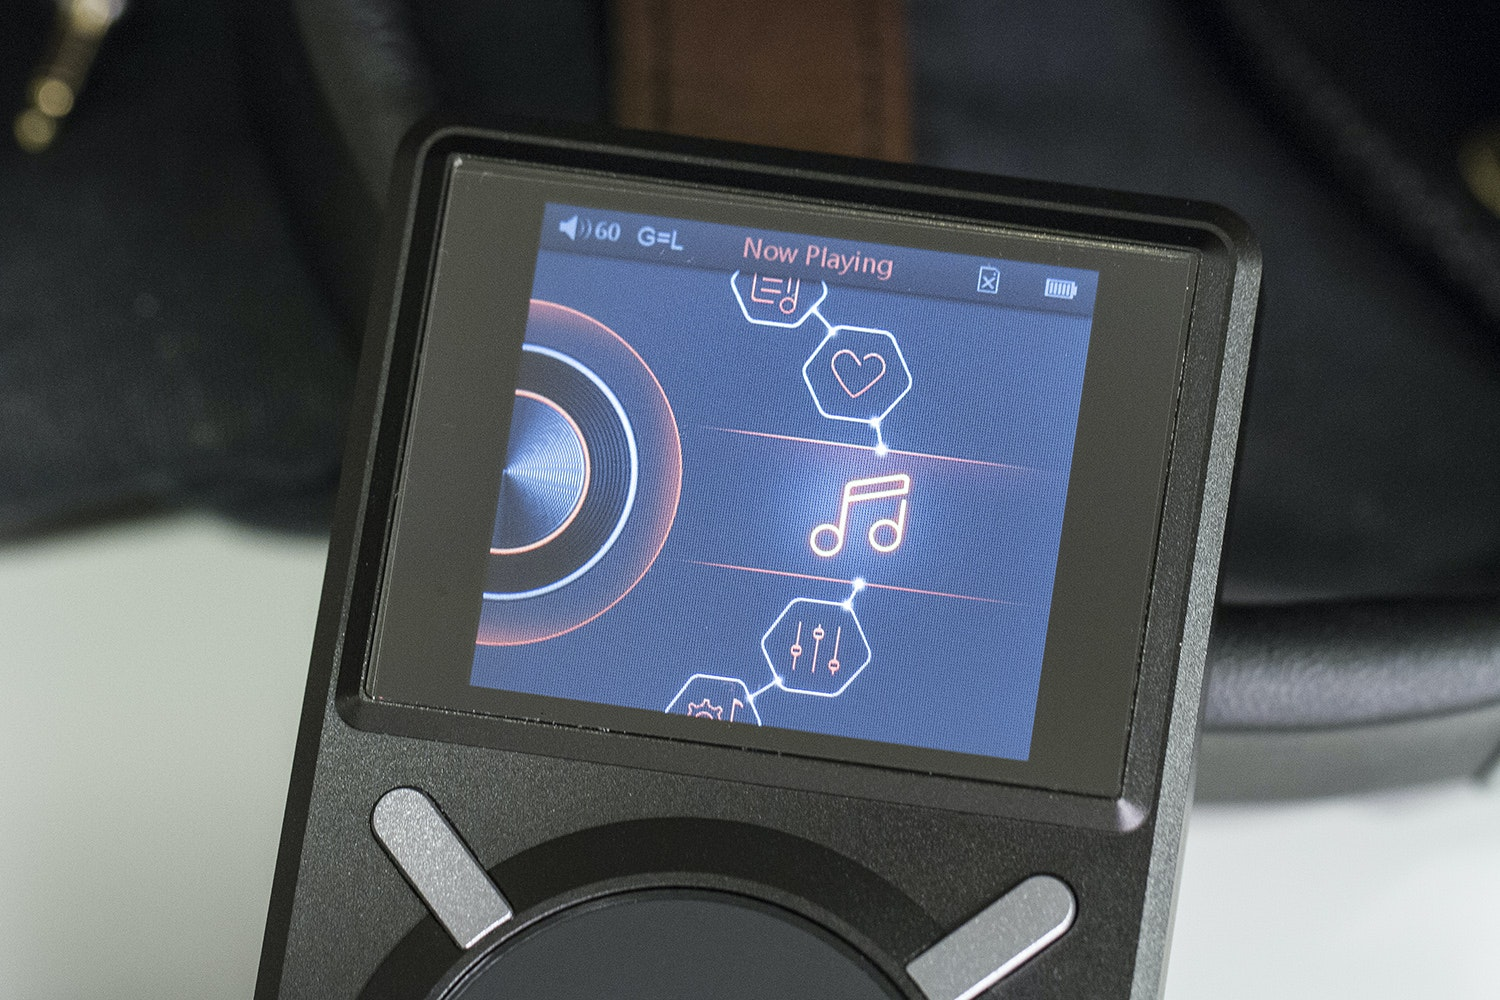 FiiO X5 Audiophile Music Player